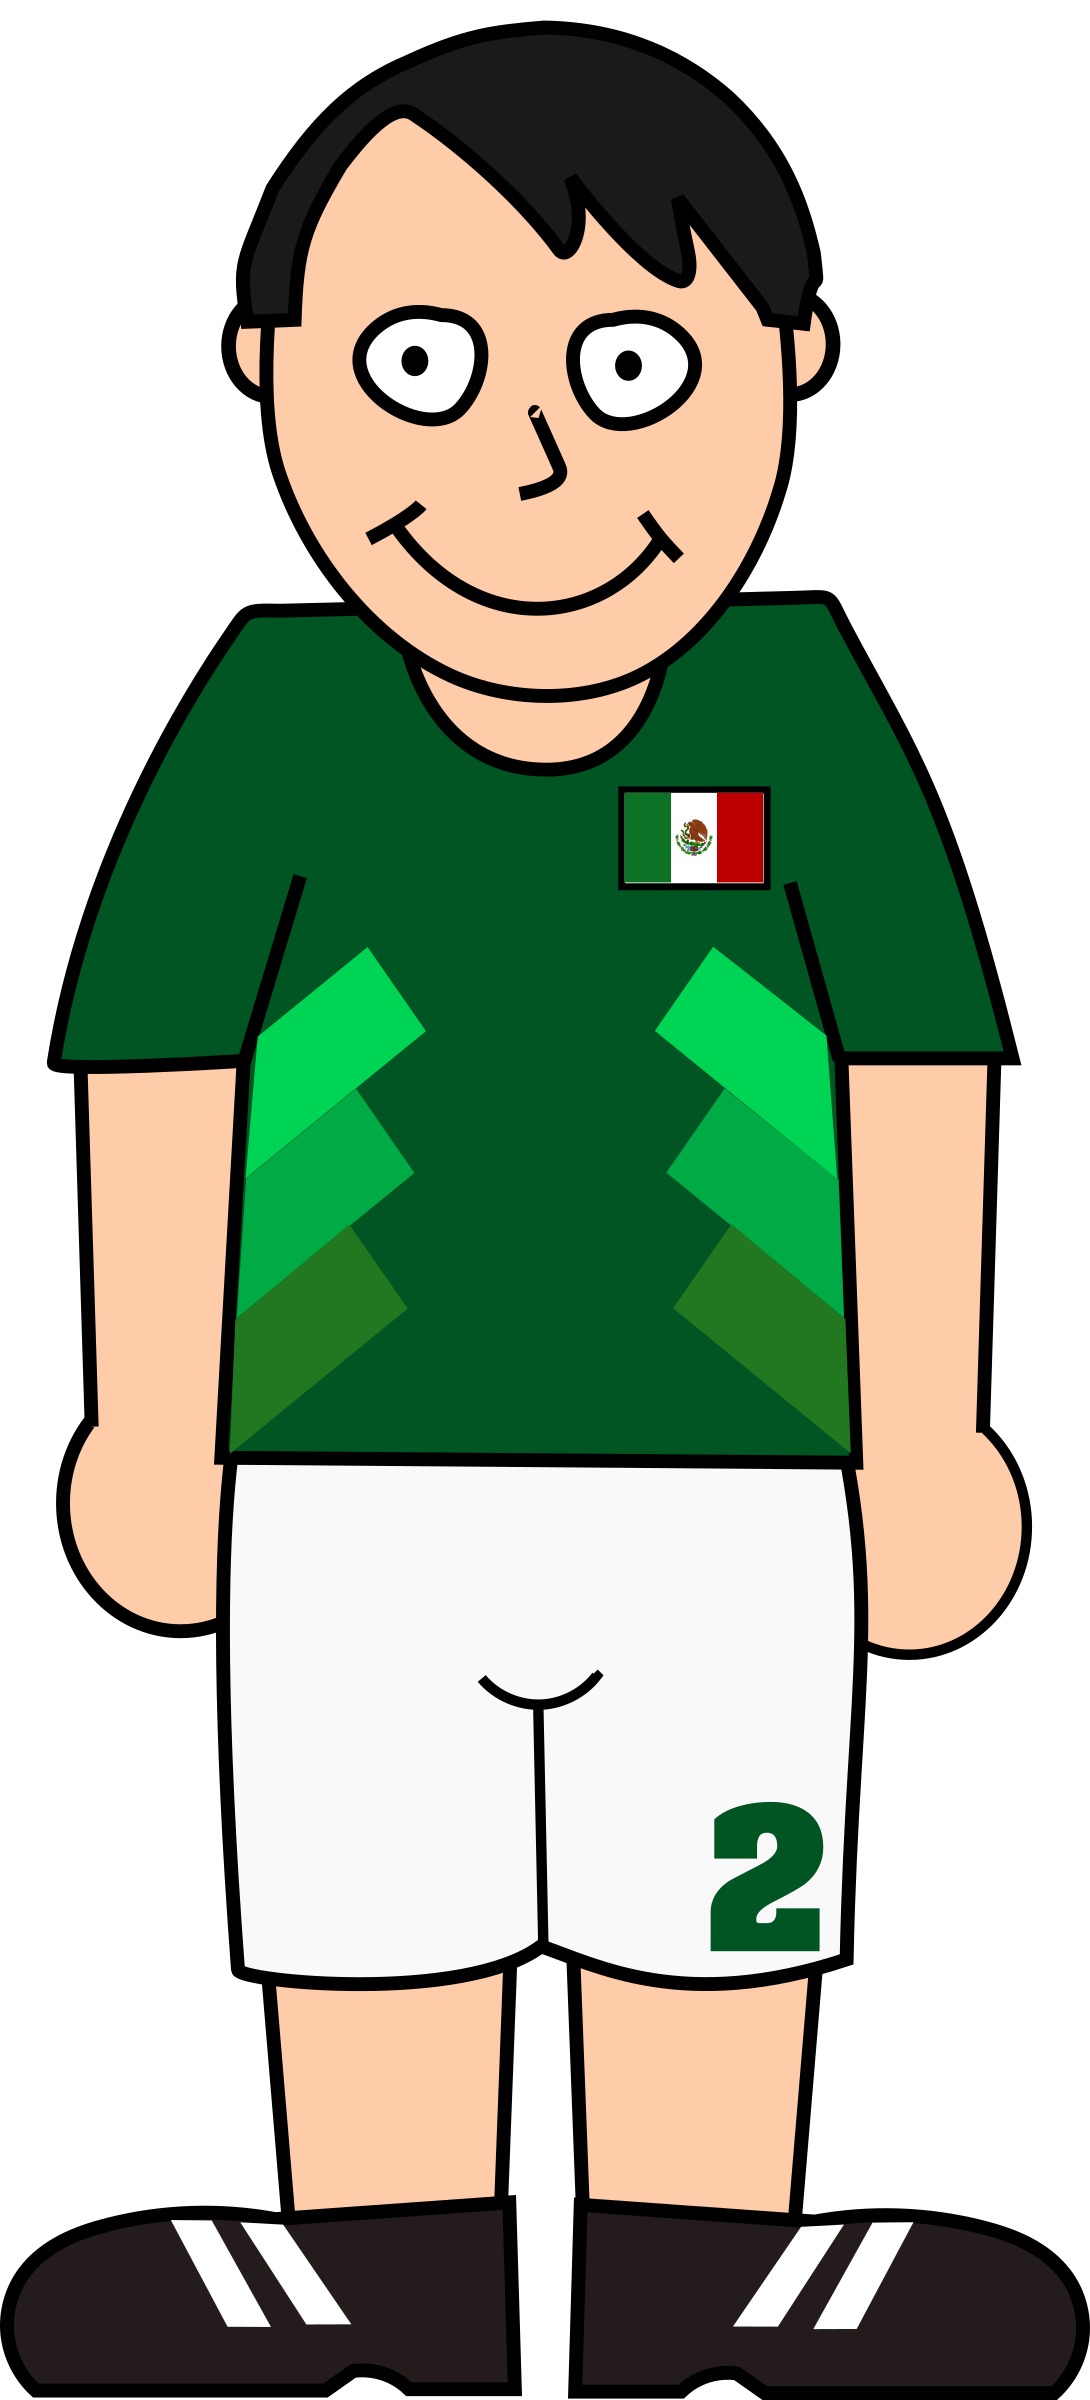 Green football player clipart svg black and white Clipart - Football player mexico svg black and white